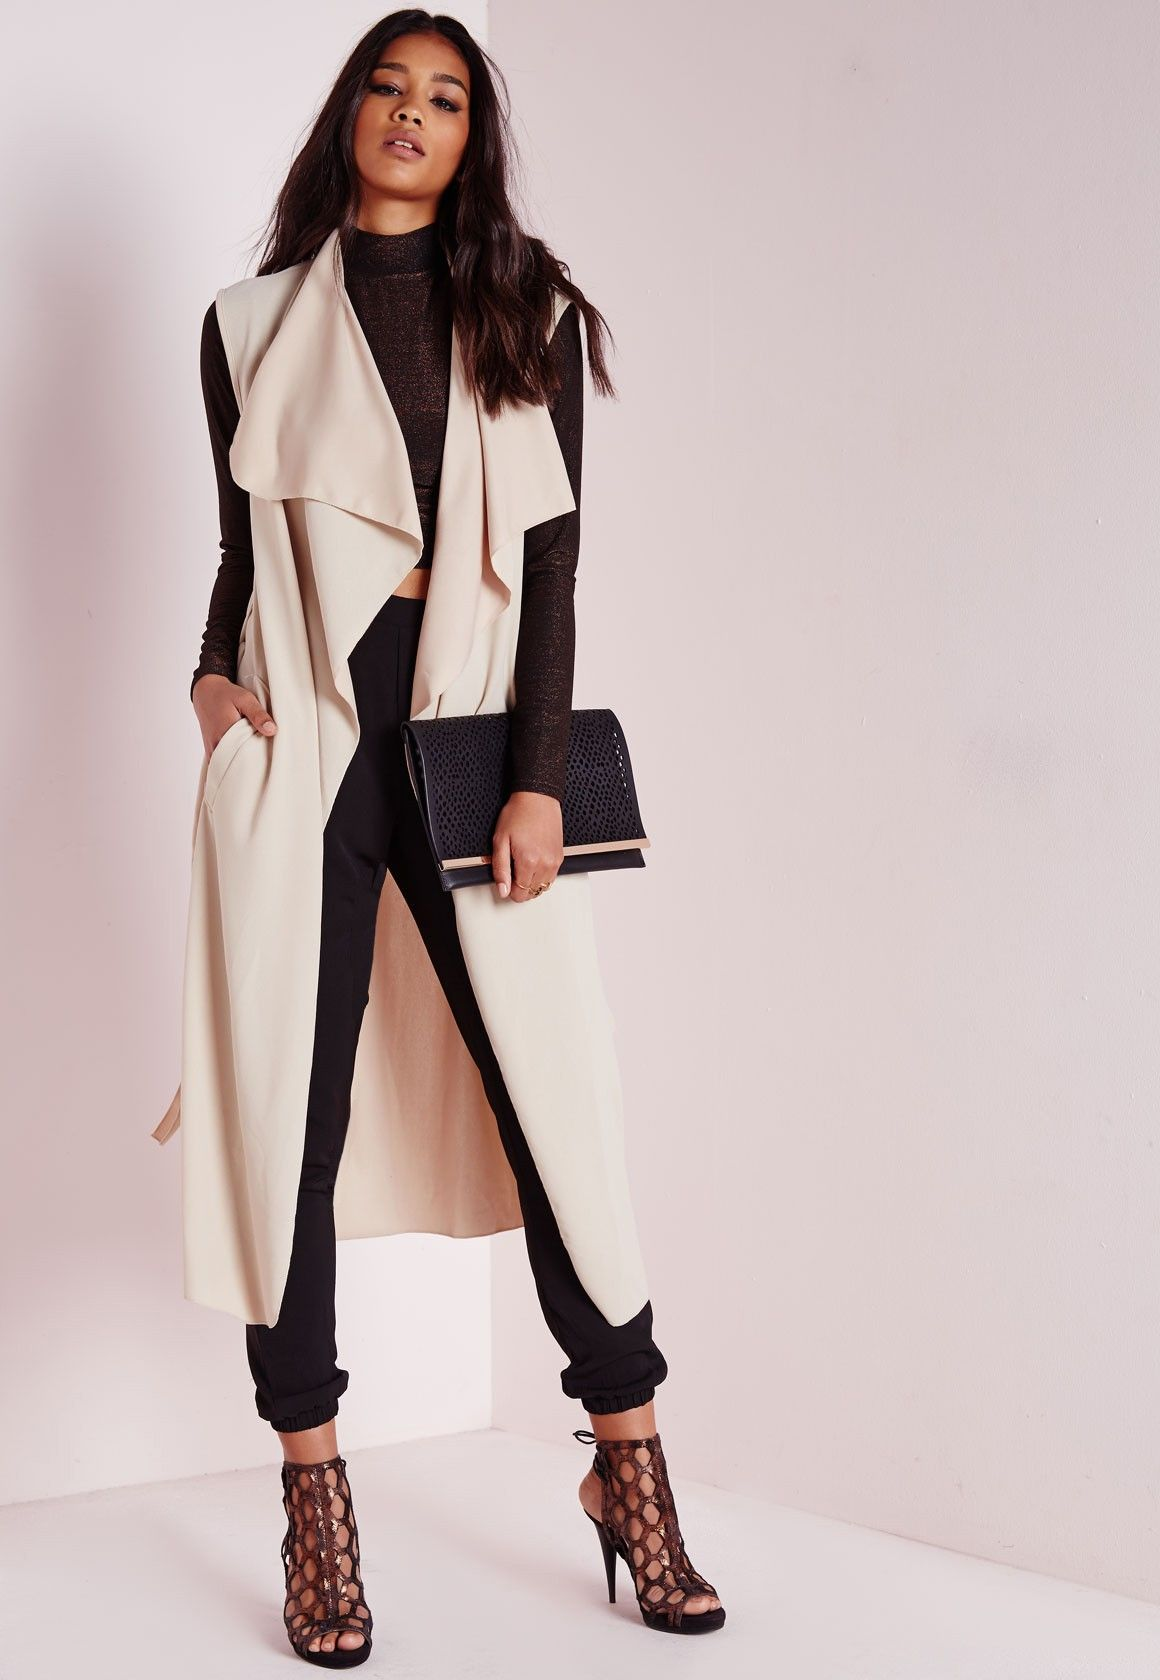 Define elegance in this chic camel waterfall duster coat. This belted  sleeveless beauty flows fluidly